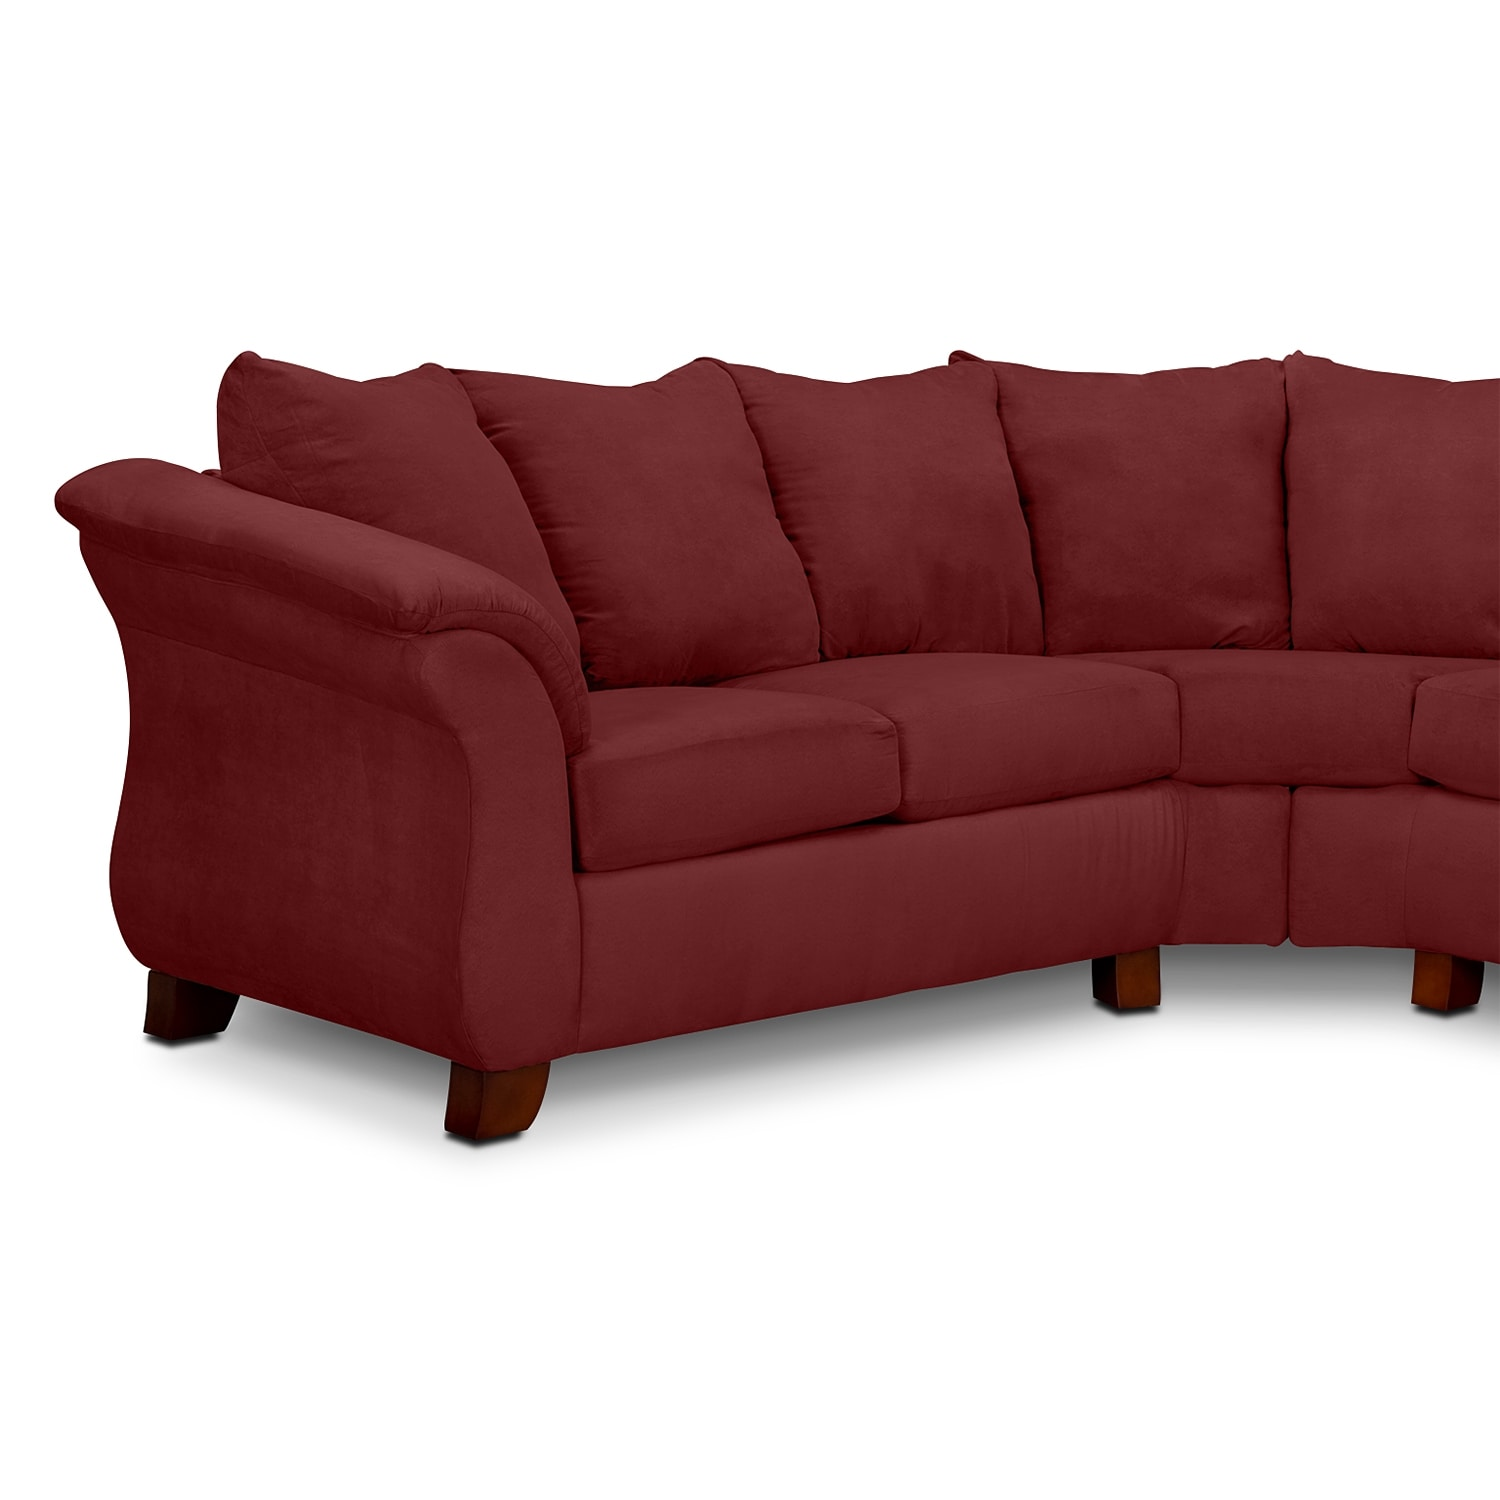 Adrian red ii 2 pc sectional value city furniture for Red sectional sofa value city